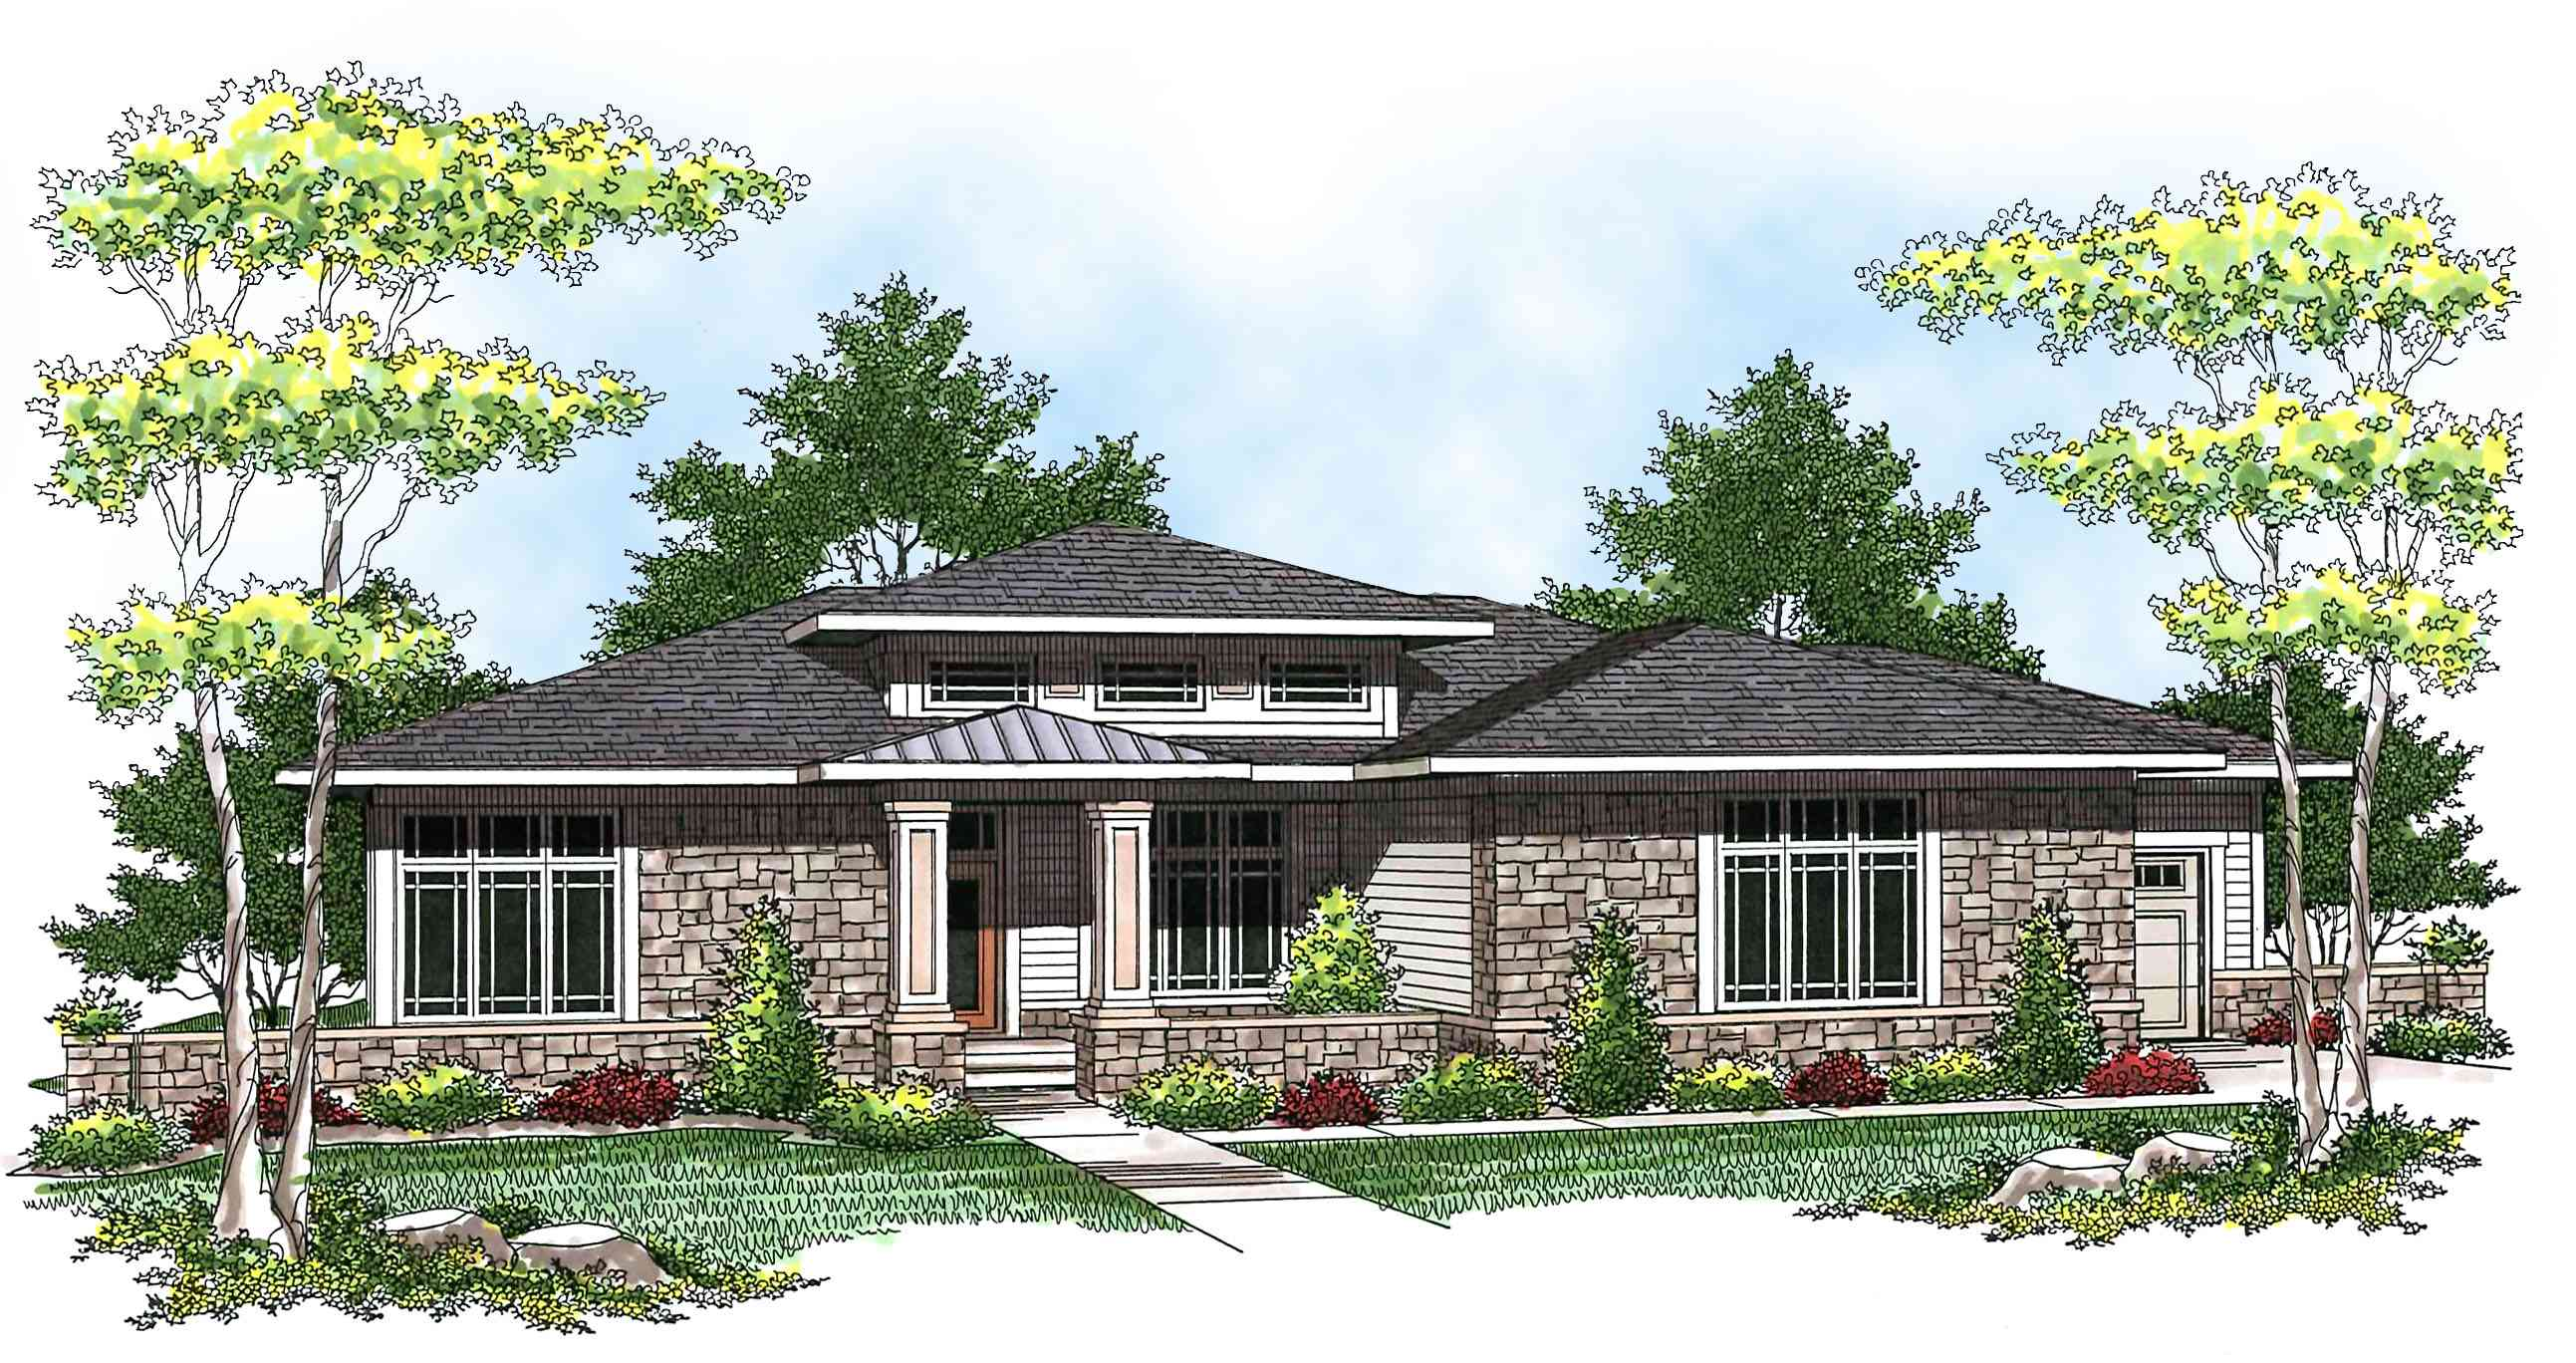 Prairie style ranch home plan 89684ah architectural for Prairie house plans